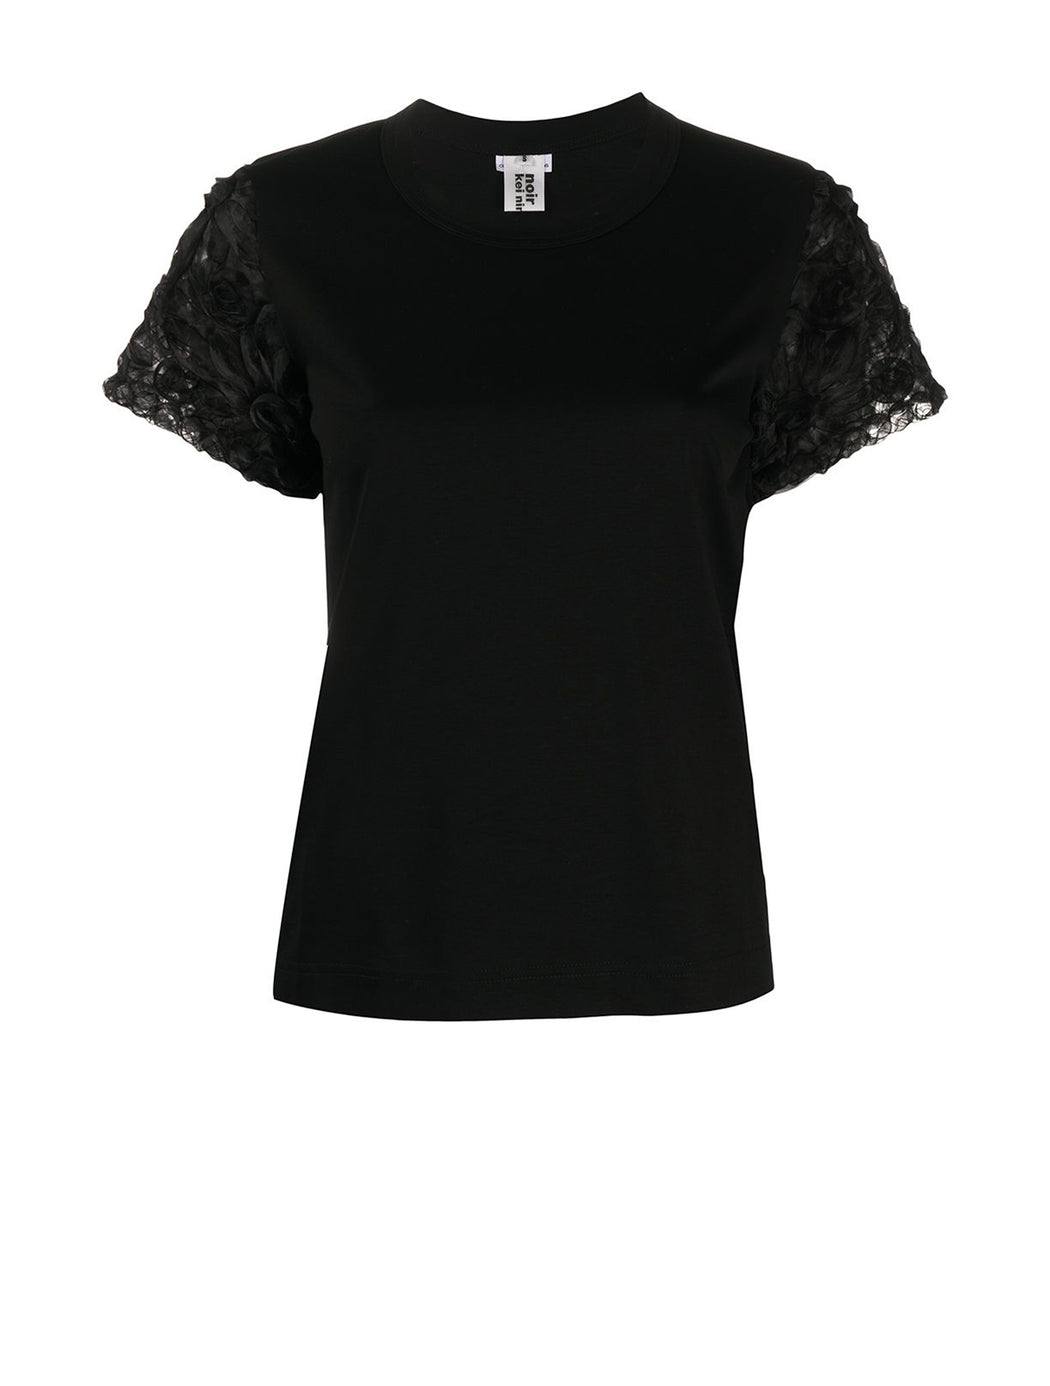 Embroidered Organza Sleeve T-Shirt